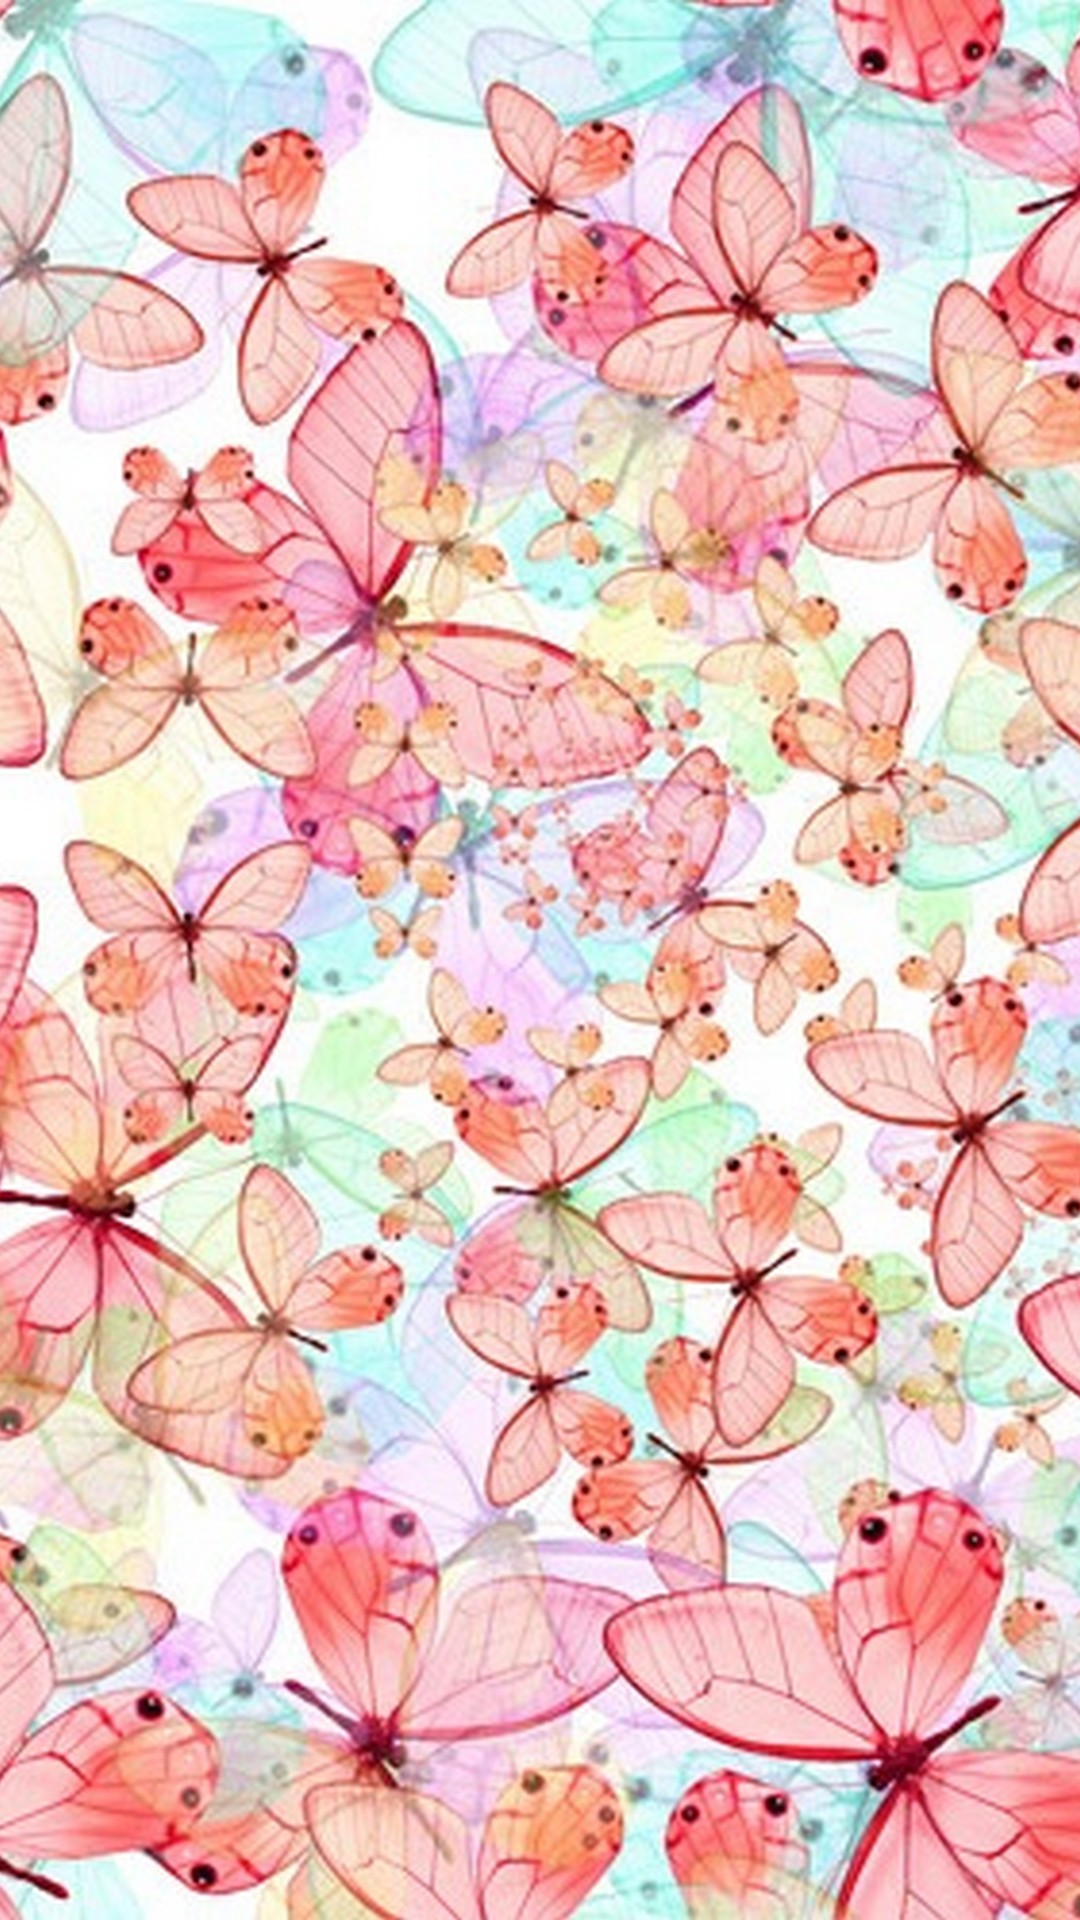 Pink Butterfly Hd Wallpapers For Mobile - Phone Wallpaper ...